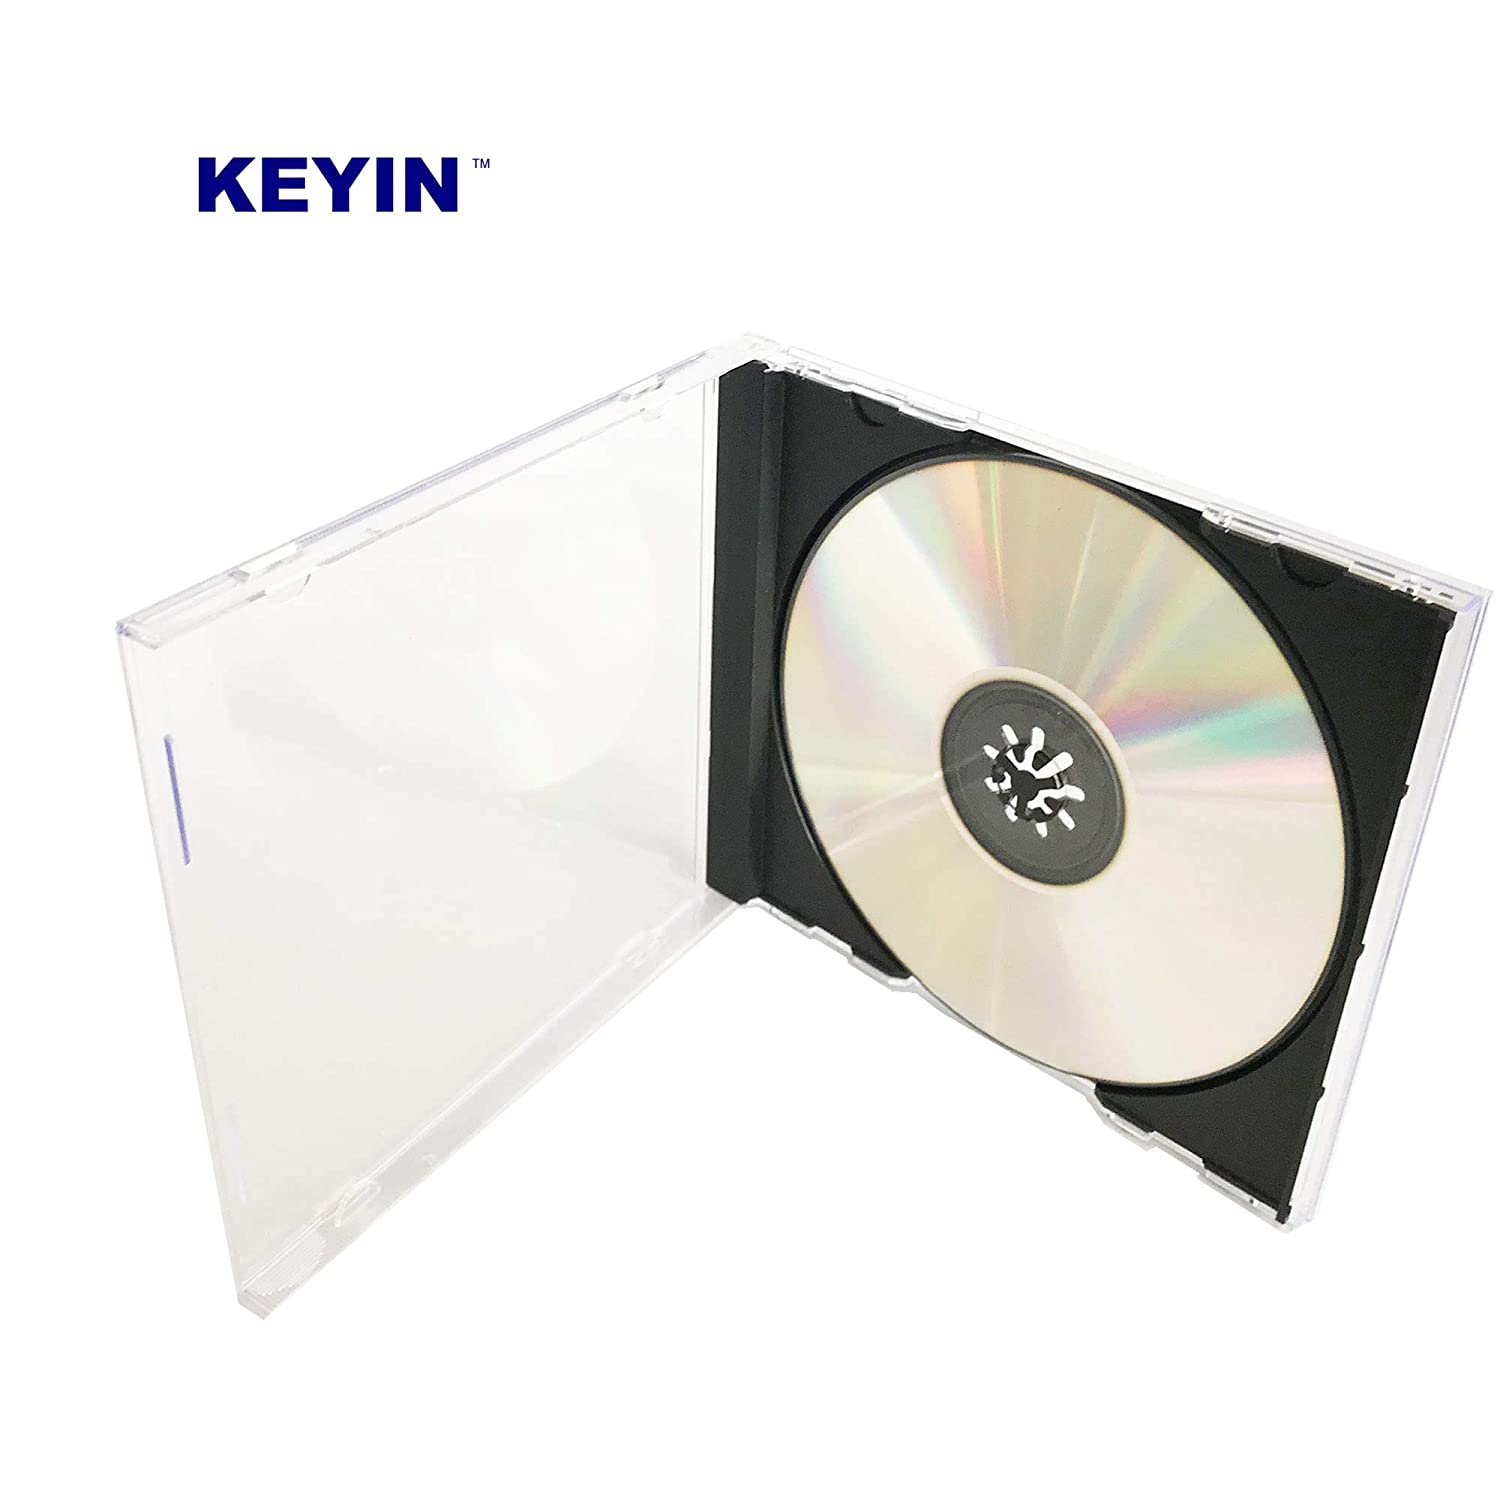 Amazon.com: Keyin - Estuche para CD (50 unidades), color ...